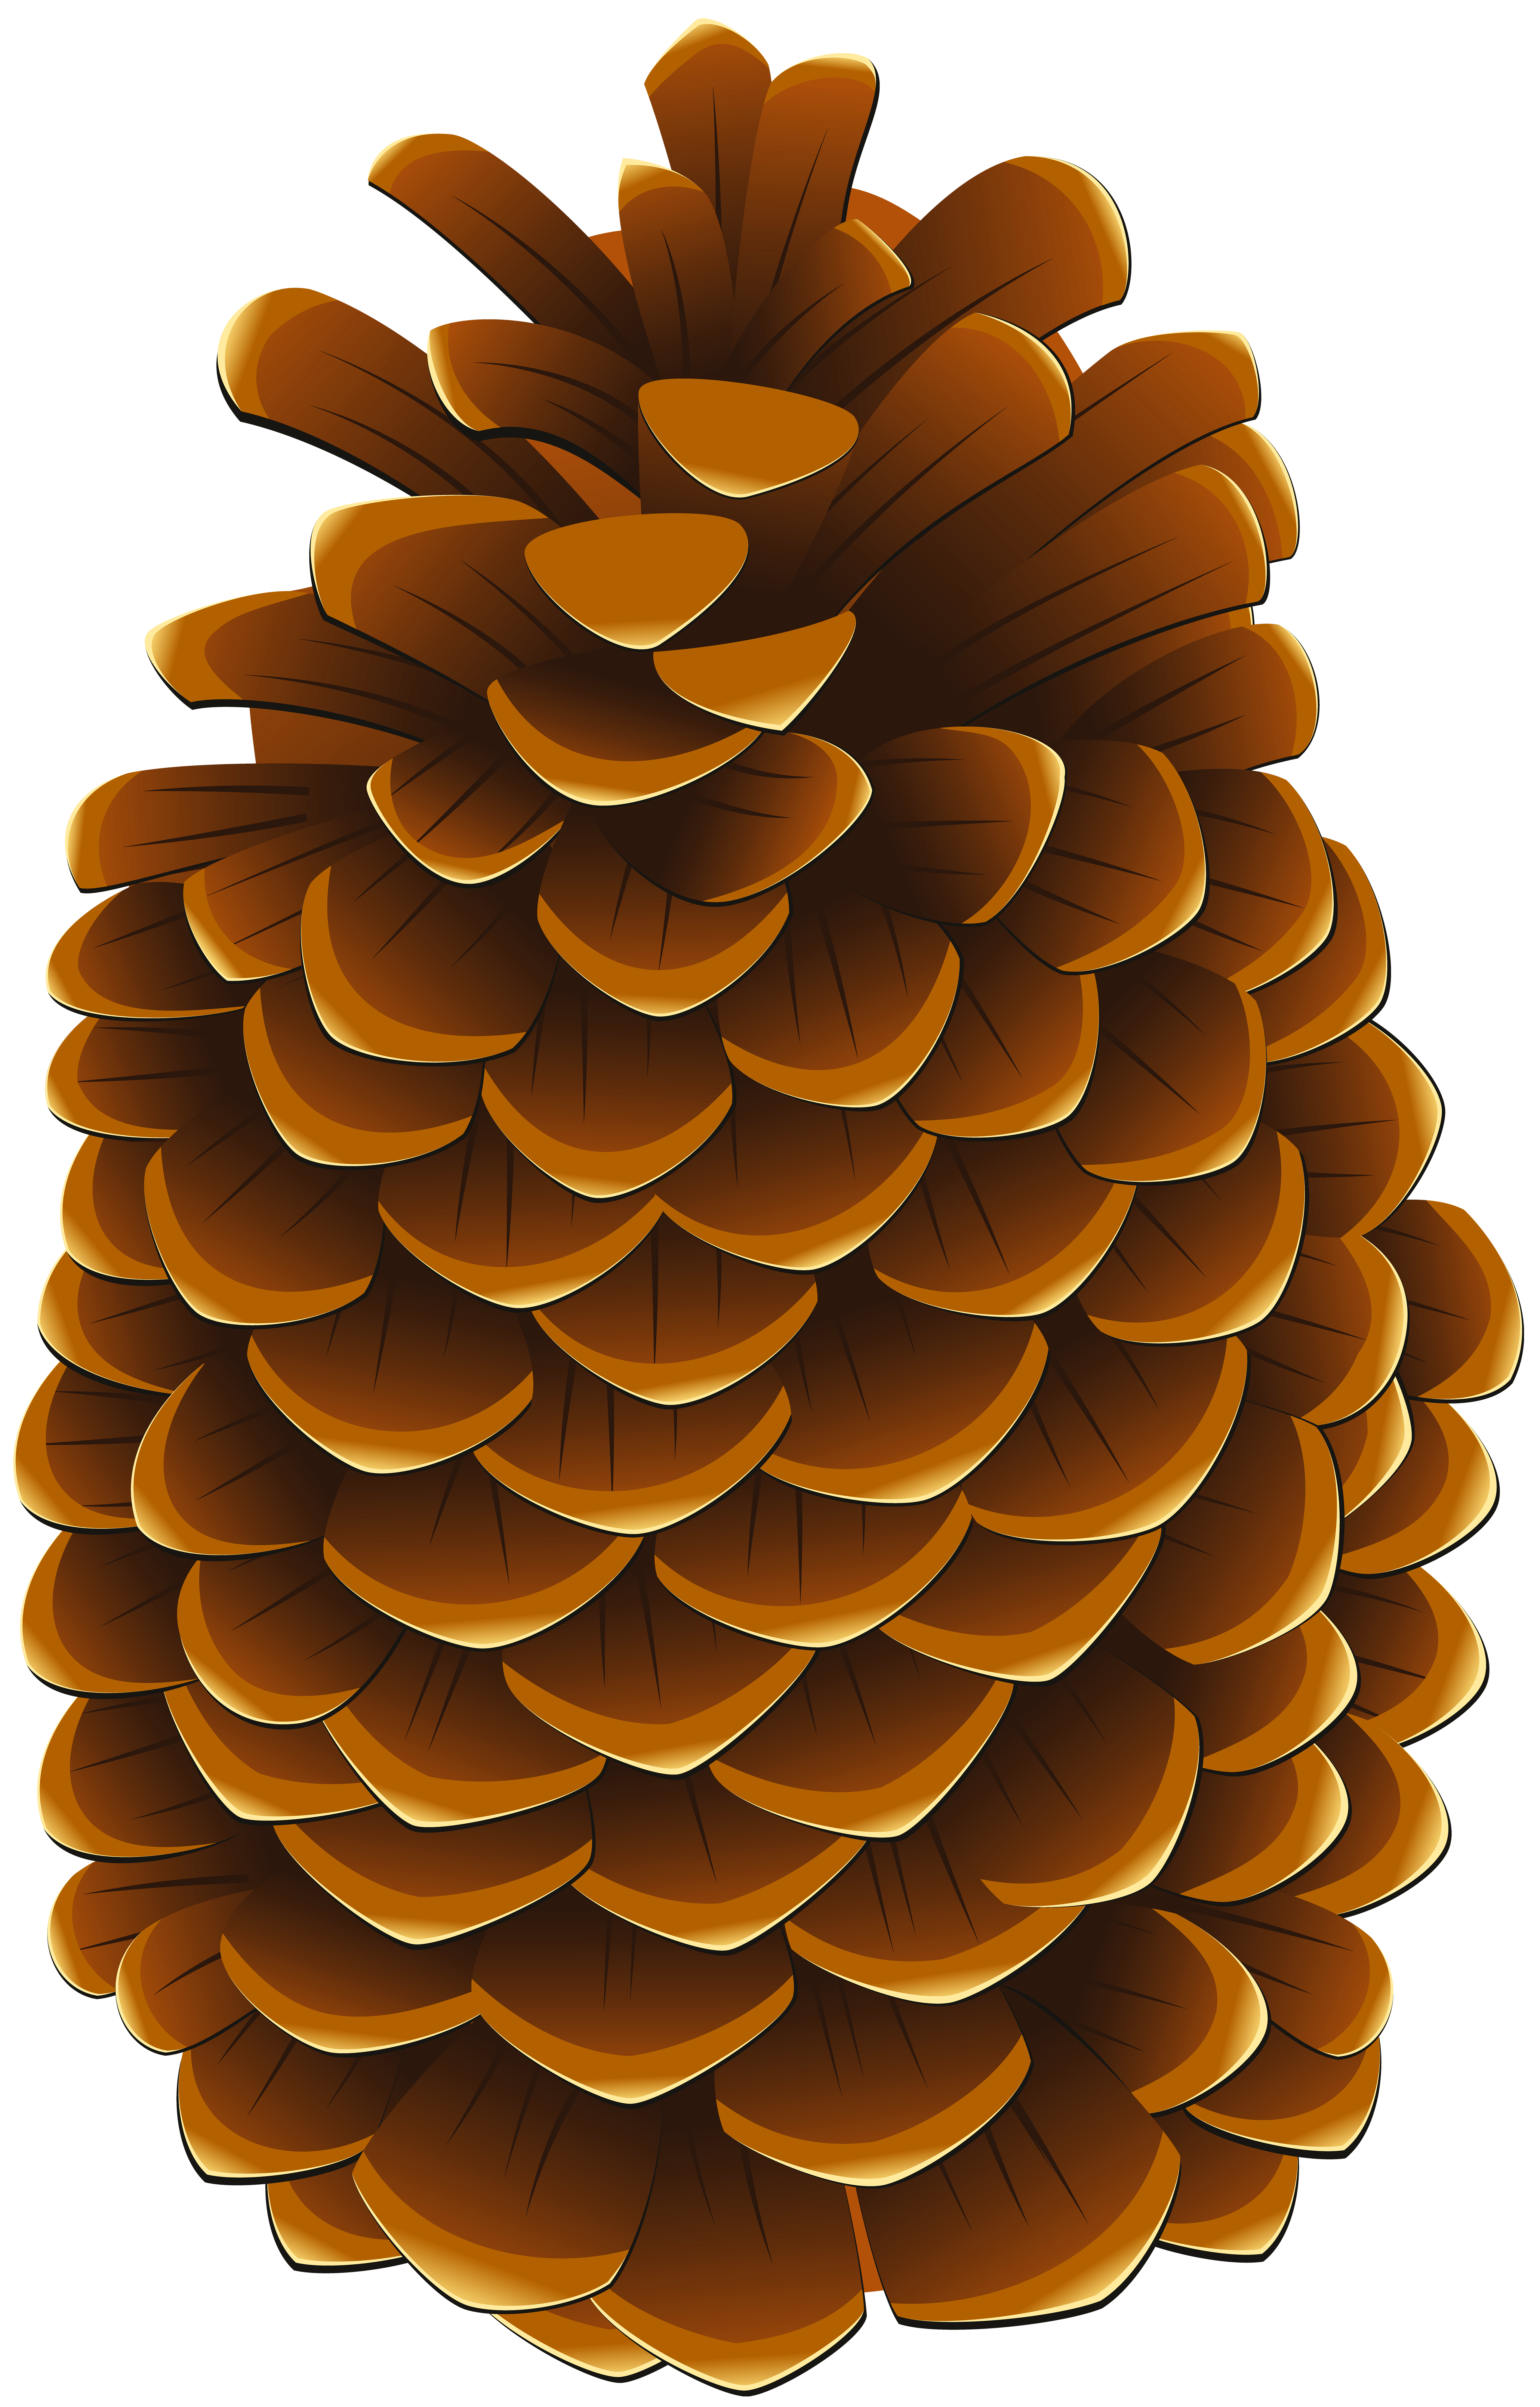 graphic free Png clip art image. Pinecone clipart.